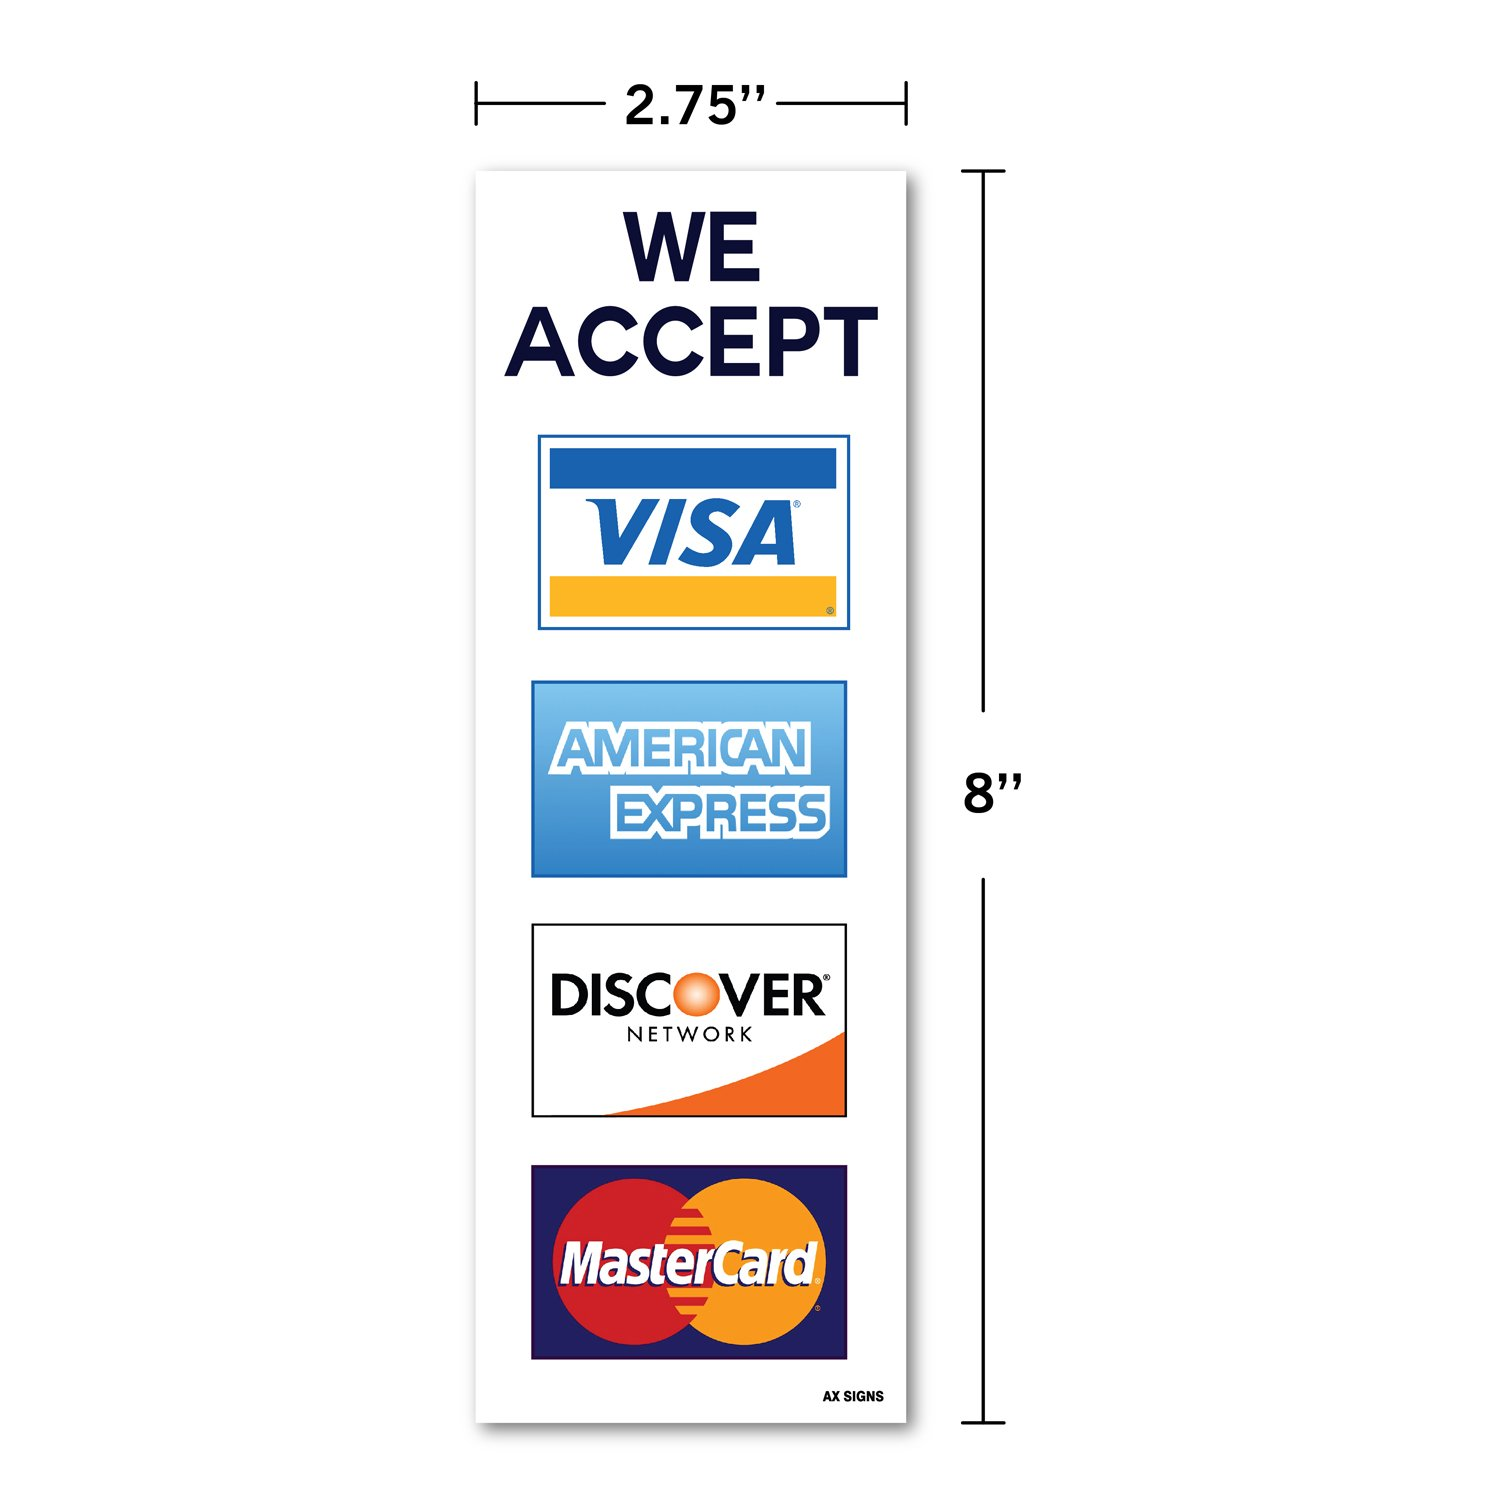 We Accept Visa MasterCard American Express AMEX Discover, 2.75